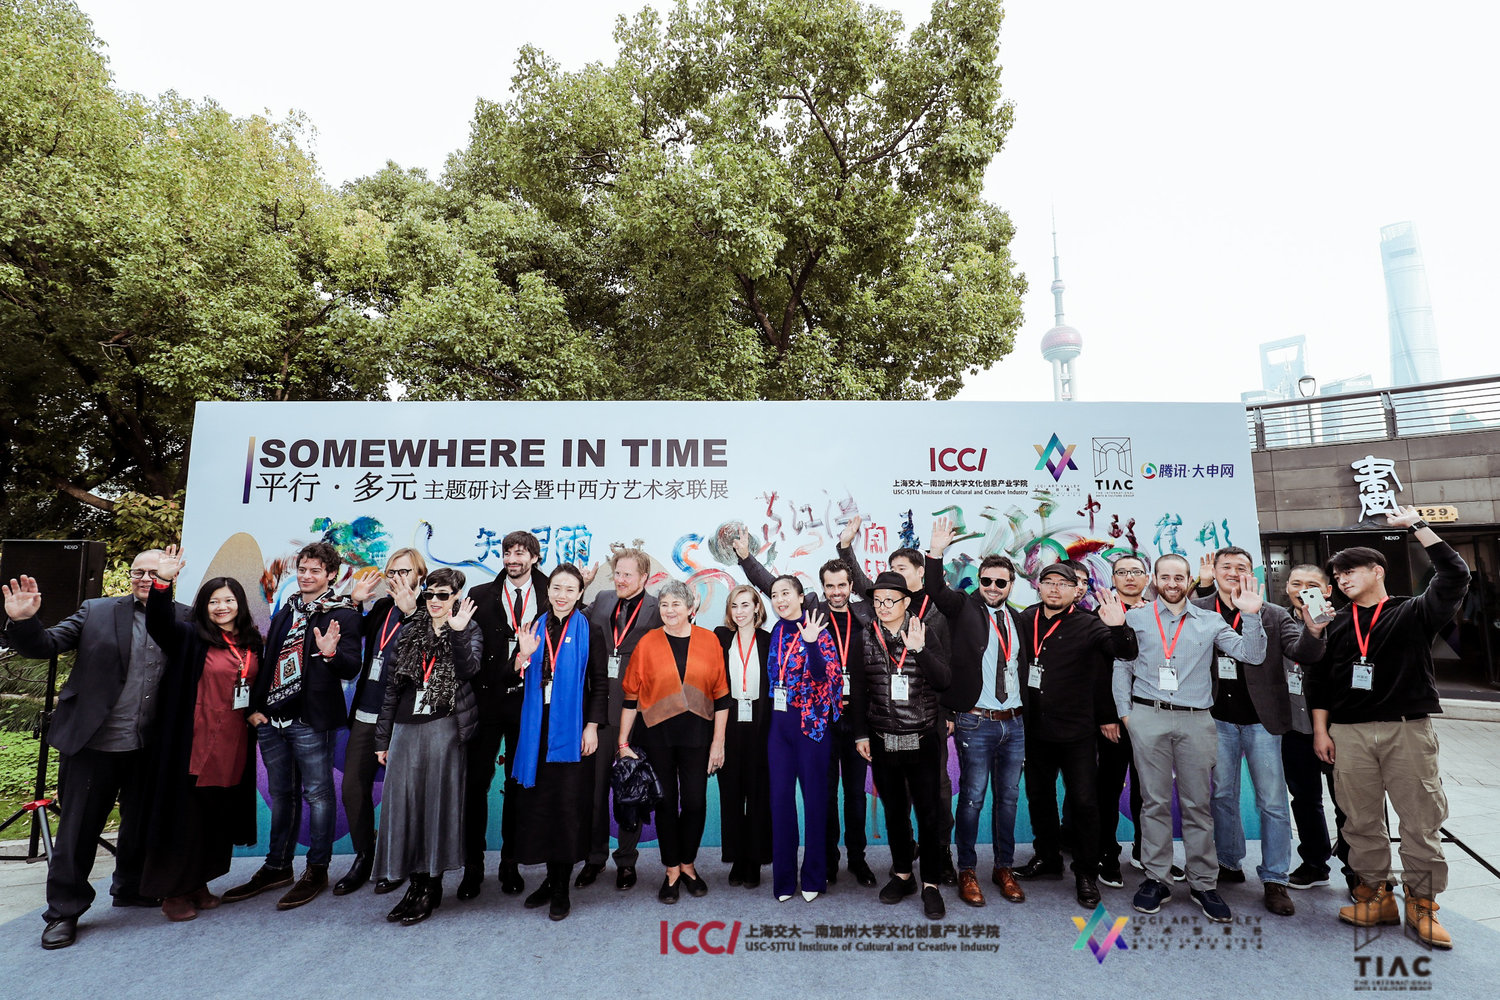 Exhibition: Somewhere In Time (Shanghai Nov 2018) - A collaboration between TIAC and the Institute of Cultural and Creative Industry saw 10 artists do a residency and group exhibition in Shanghai recently.